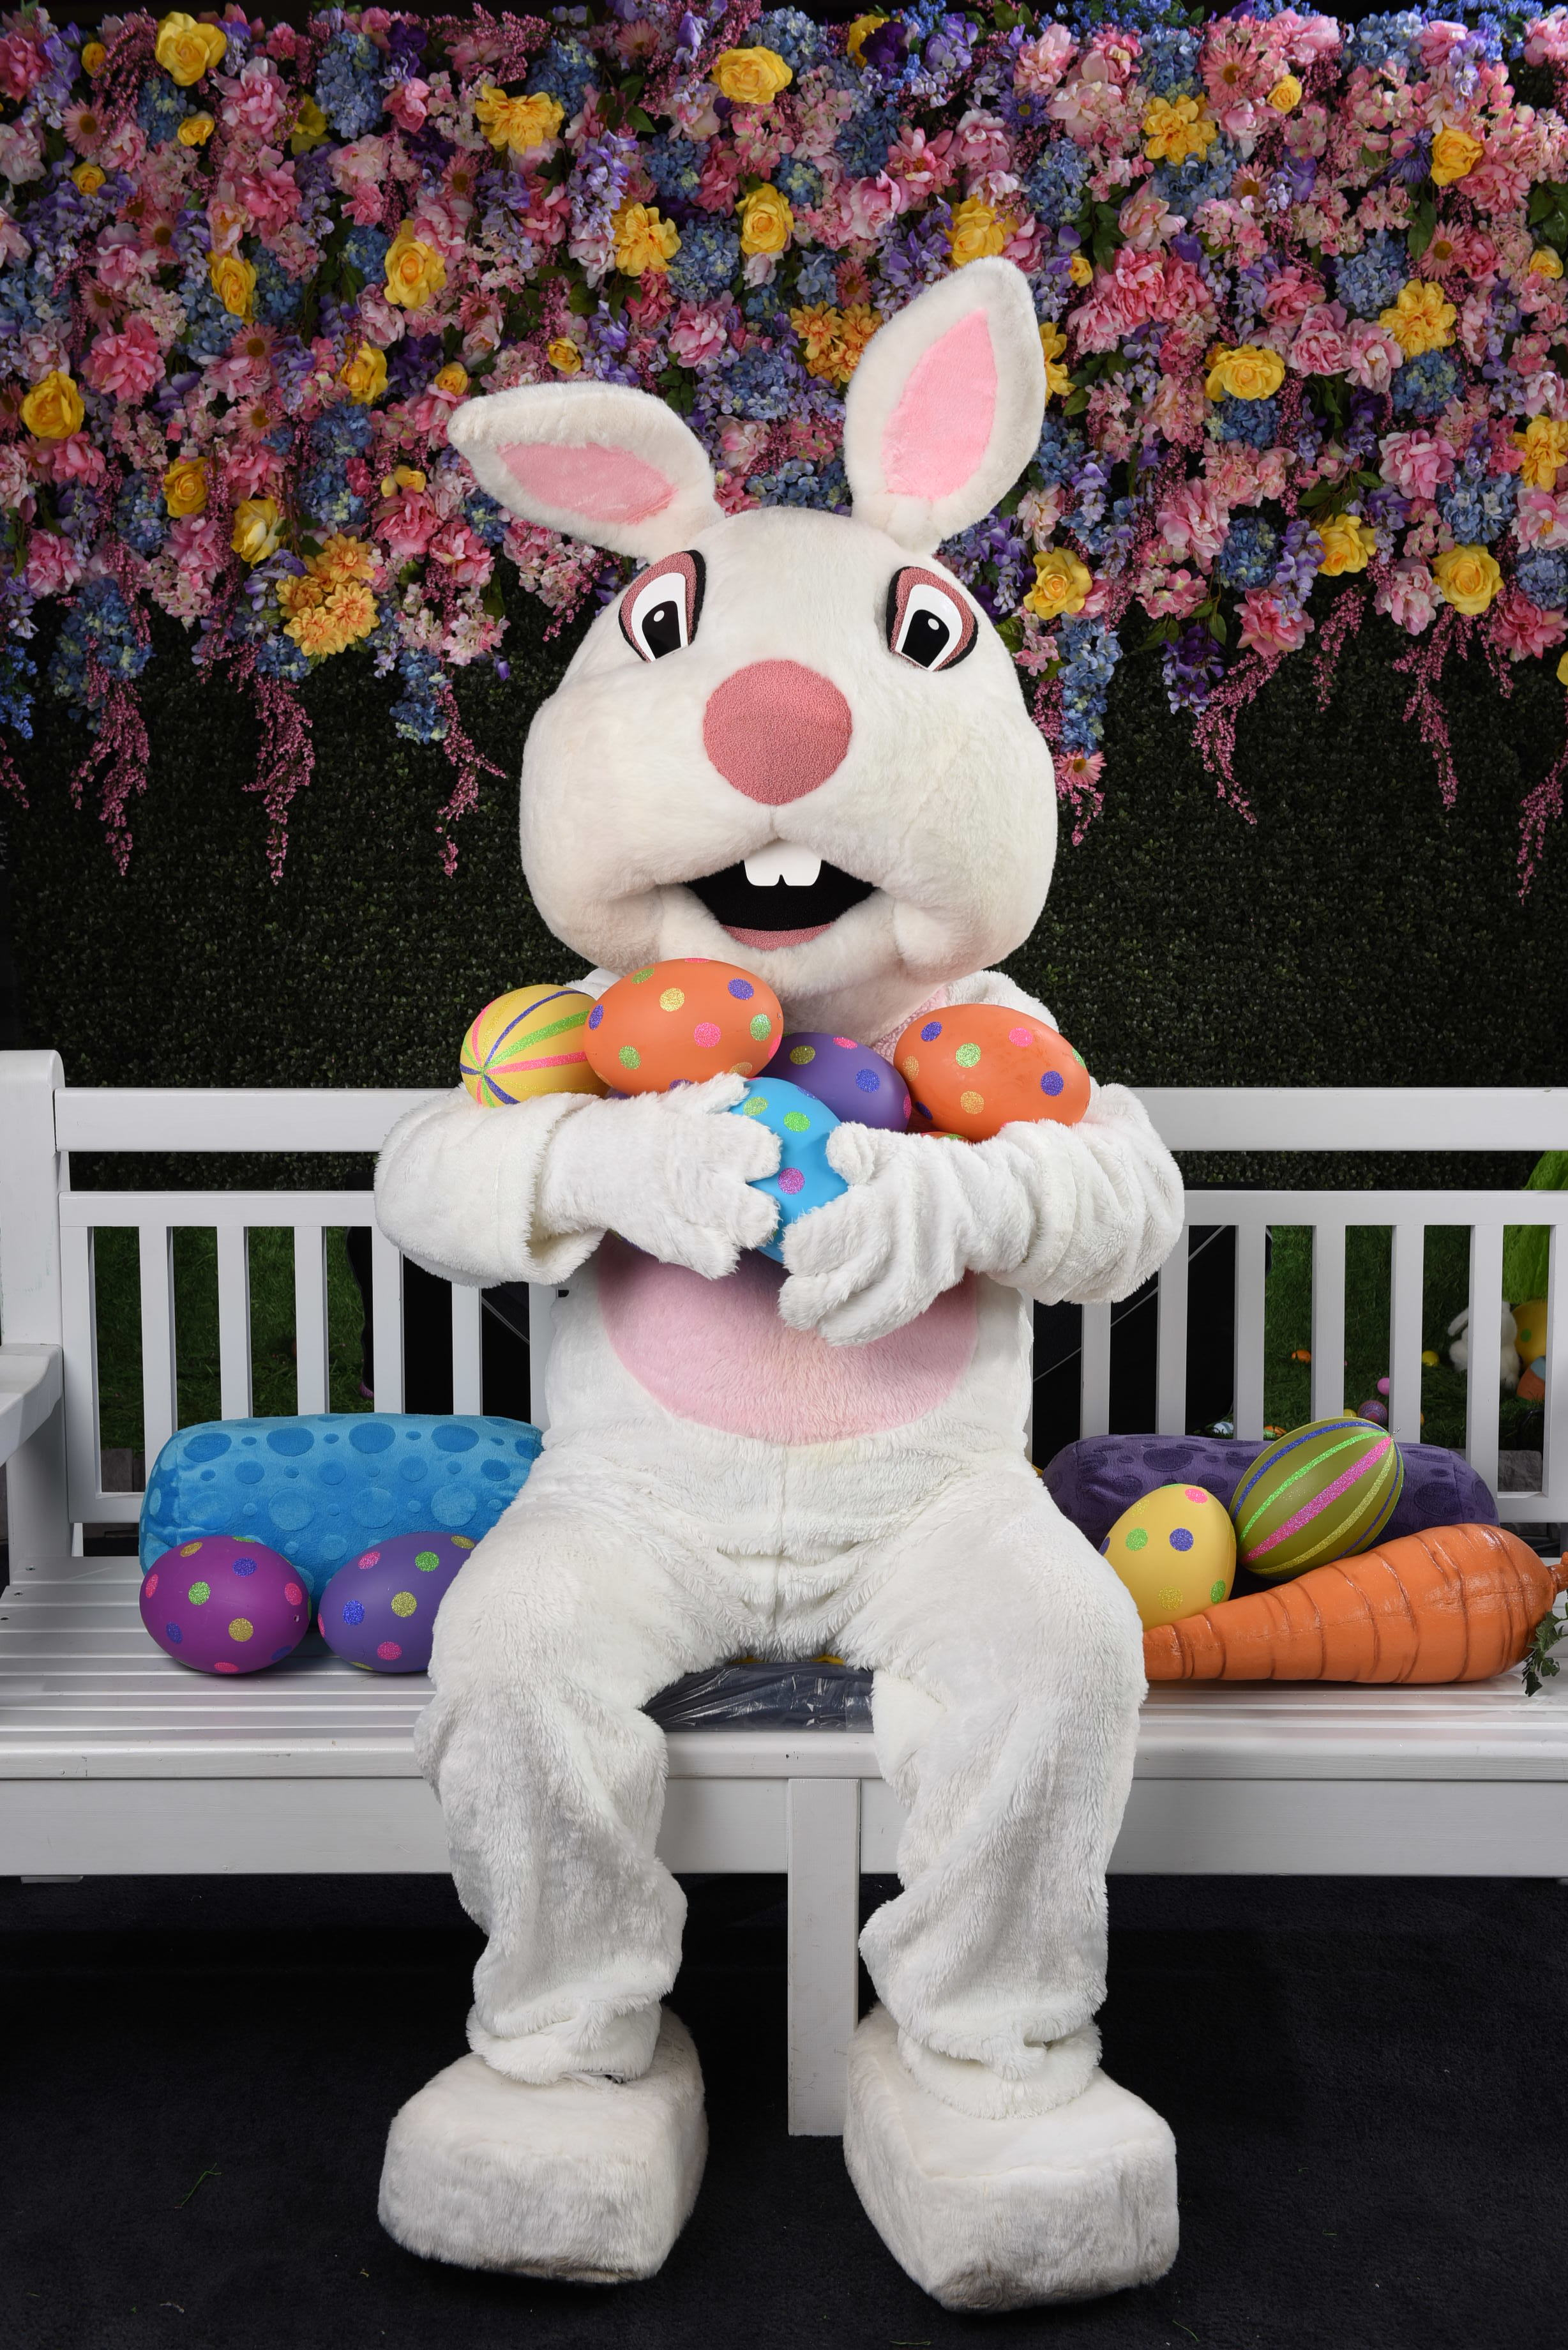 Happy Easter! - Easter Bunny's Hours:April 8th -20thMonday to Thursday 10am-2pmFriday to Sunday 10am-2pm, 3pm-5pmMind the gap from 2-3pm. The Easter Bunny goes for a carrot break!